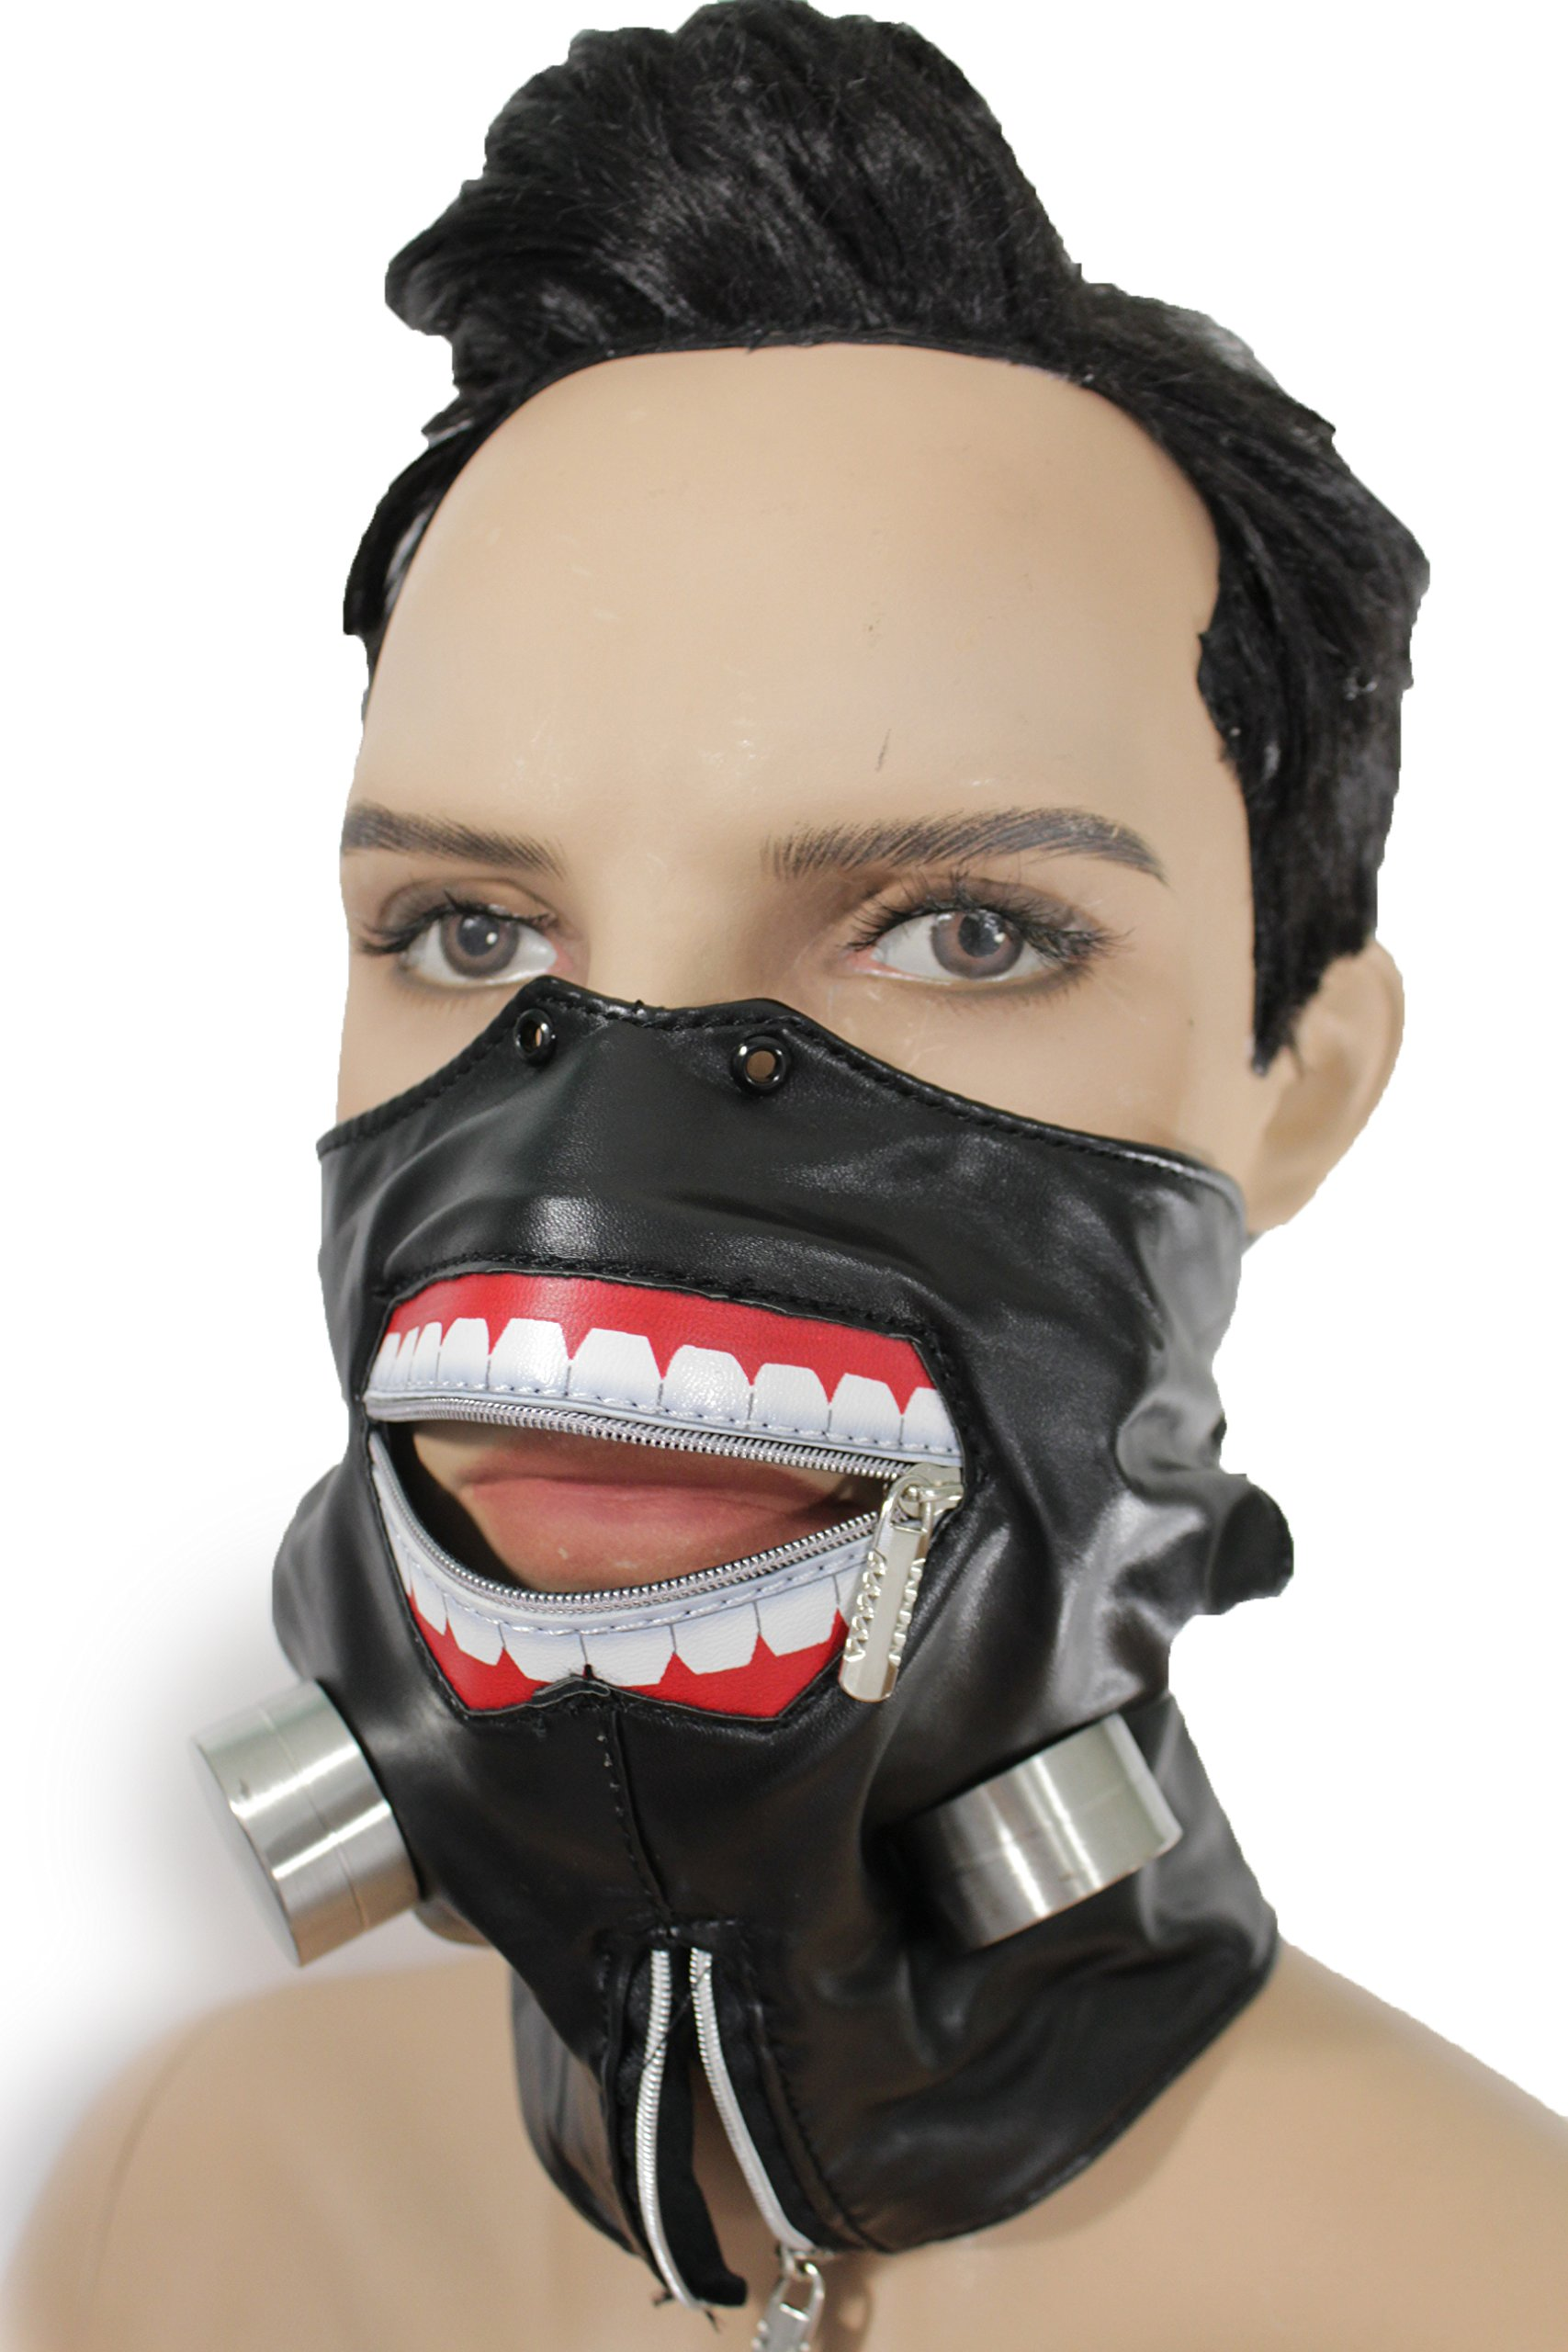 TFJ Men Mouth Half Face Muzzel Halloween Hannibal Biohazard Mask S&M Costume Black